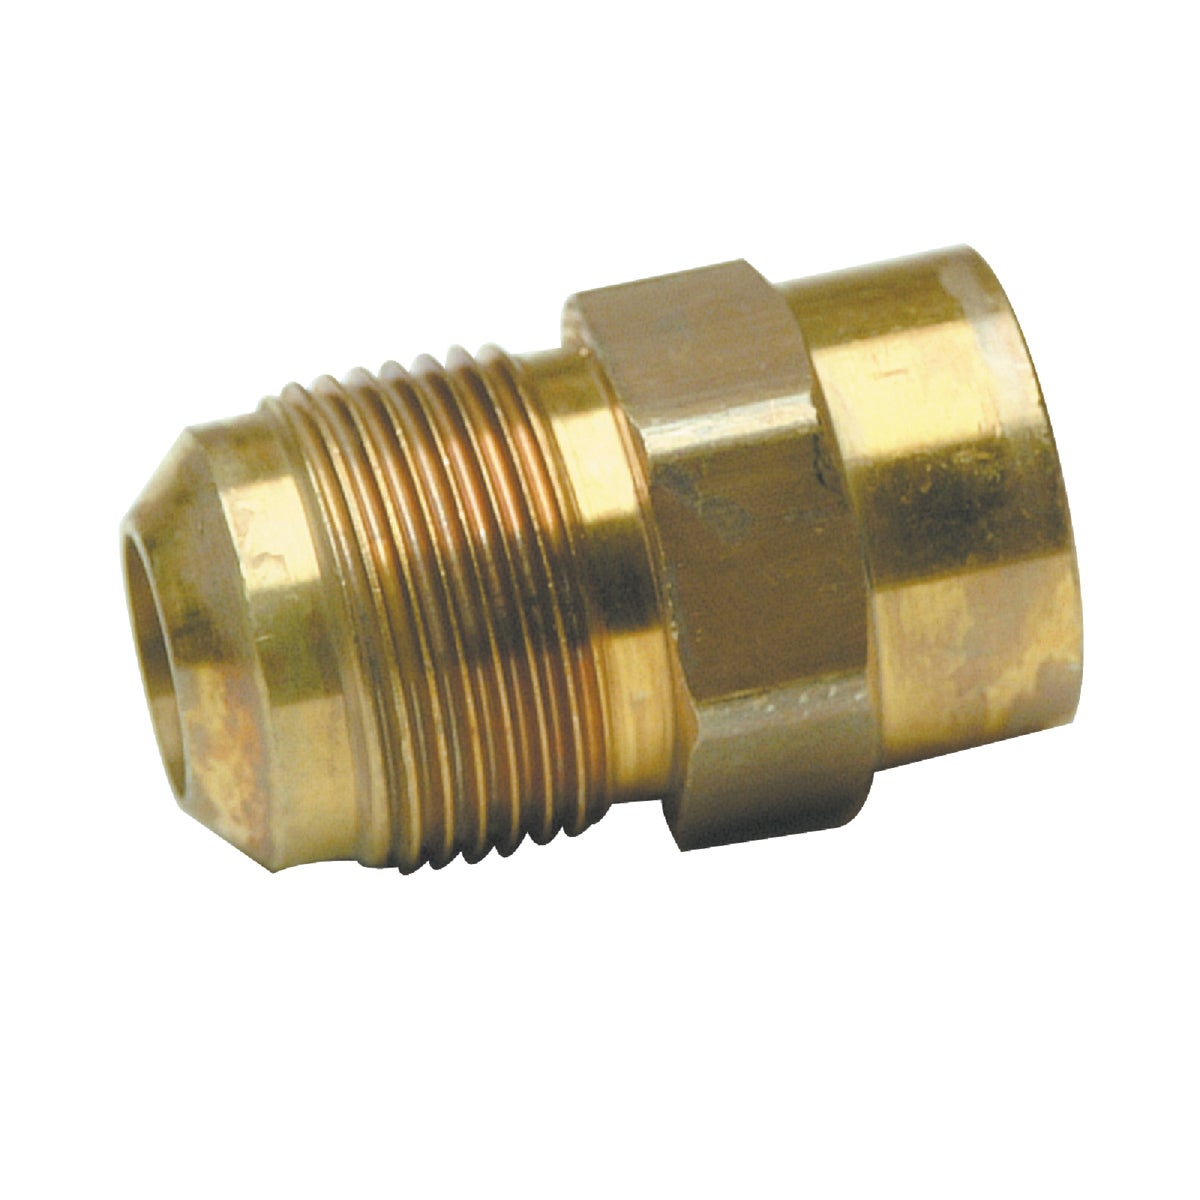 5/8ODX1/2F GAS FITTING - MAU1-10-8 by Brass Craft